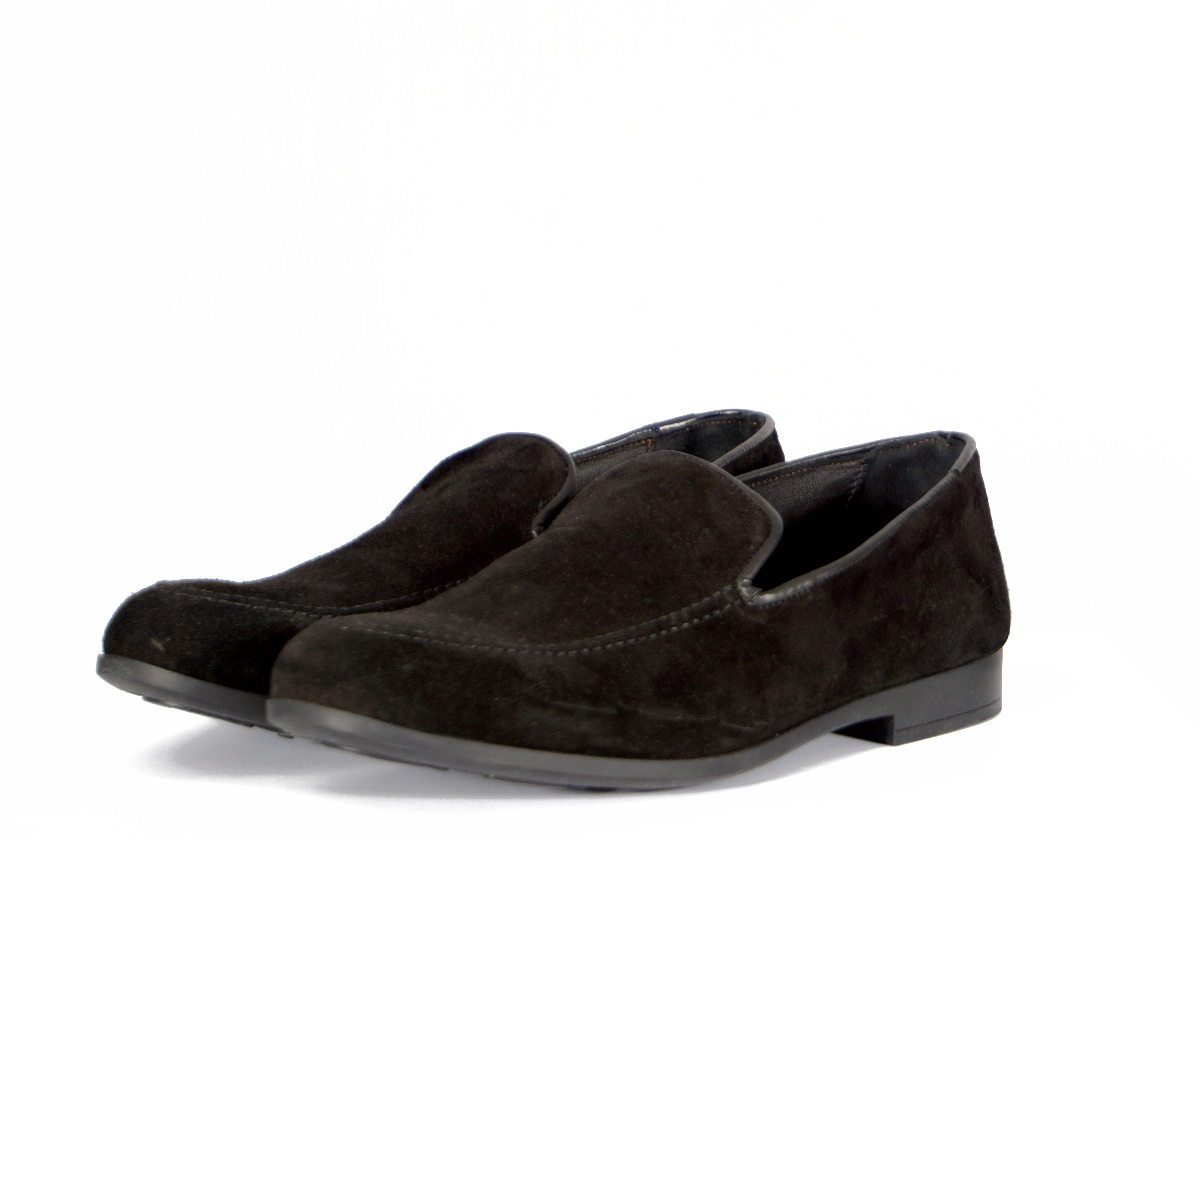 Made in Italy MadeInItaly Loafers CUCIPARE Black